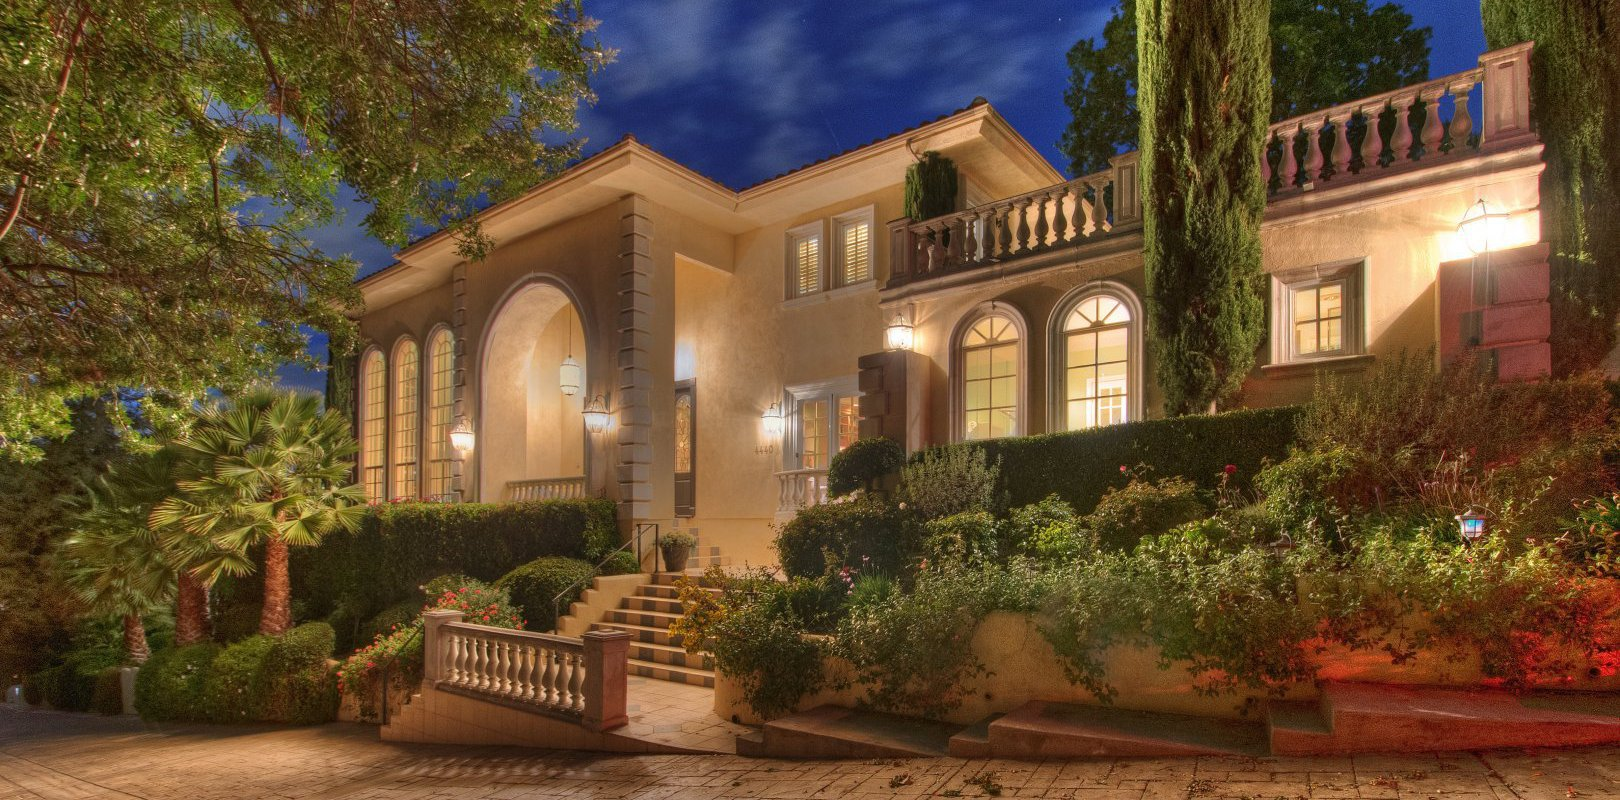 Beautiful Mediterranean Villa in Encino